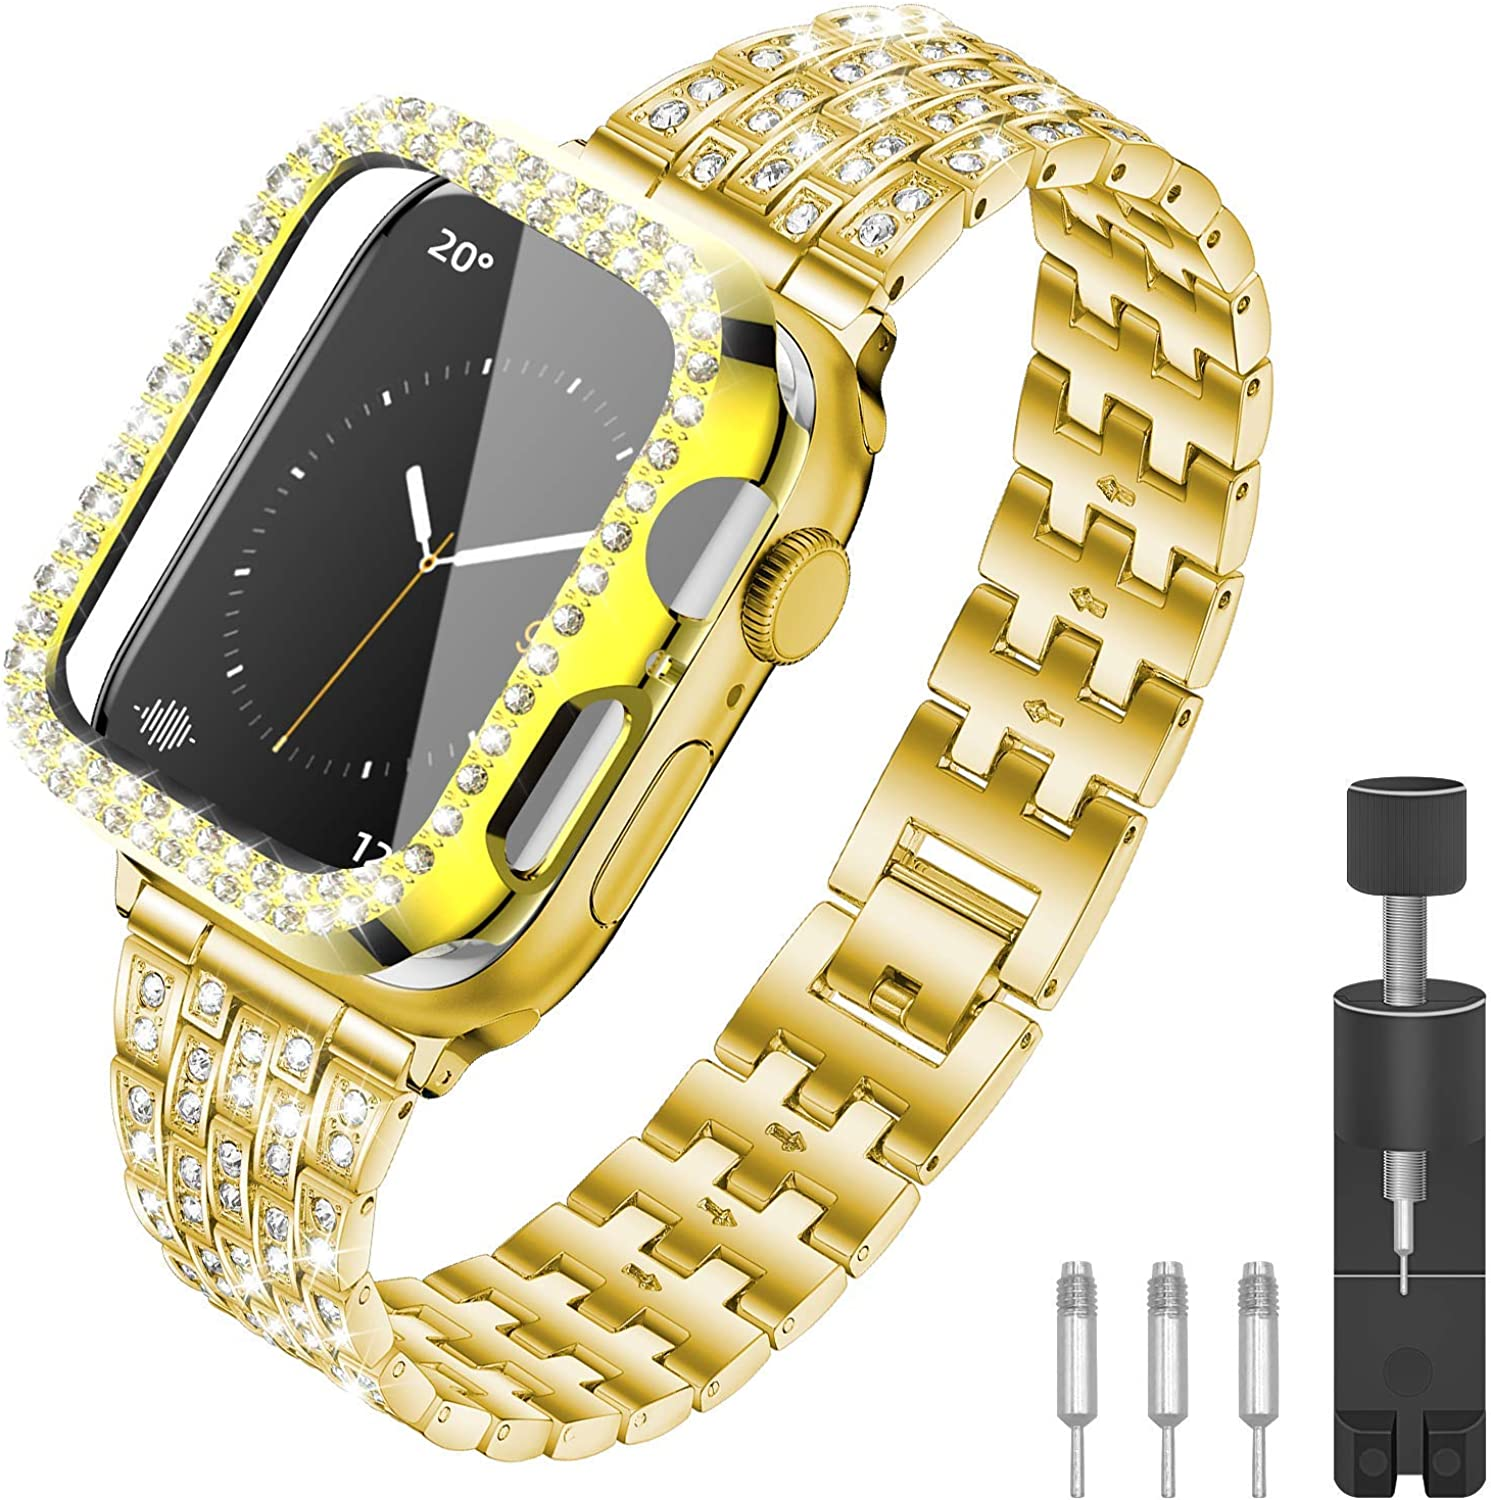 SEILETOO Bling Band Compatible with Apple Watch Band with Rhinestone Diamond Case 38mm/40mm/42mm/44mm for iWatch Series 6/5/4/3/2/1/SE band